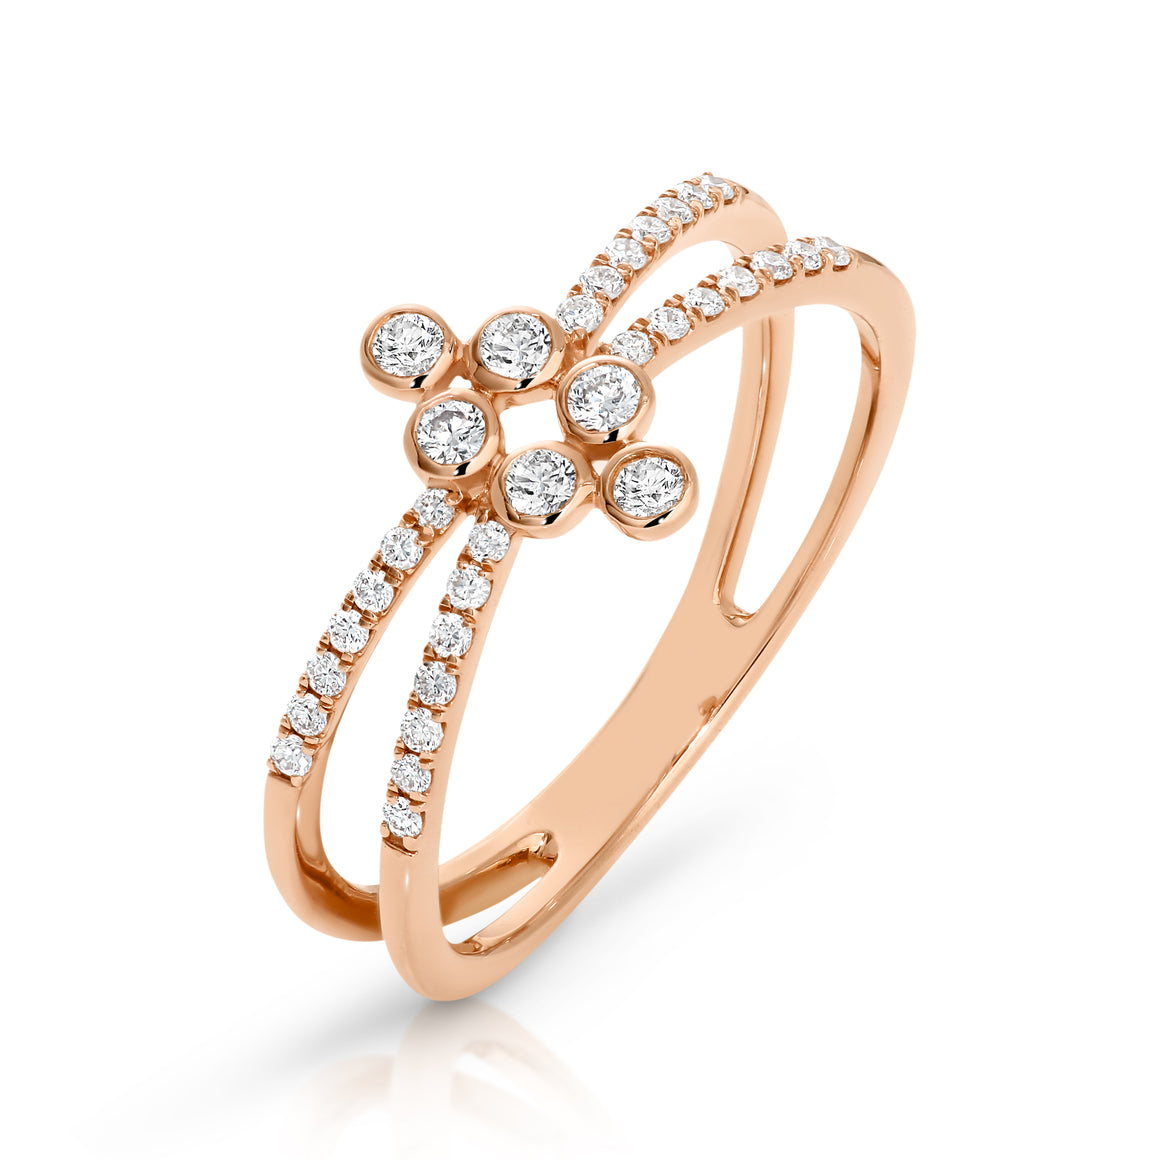 9ct Gold & Diamond Claire Ring - Gemma Stone  ABN:51 621 127 866